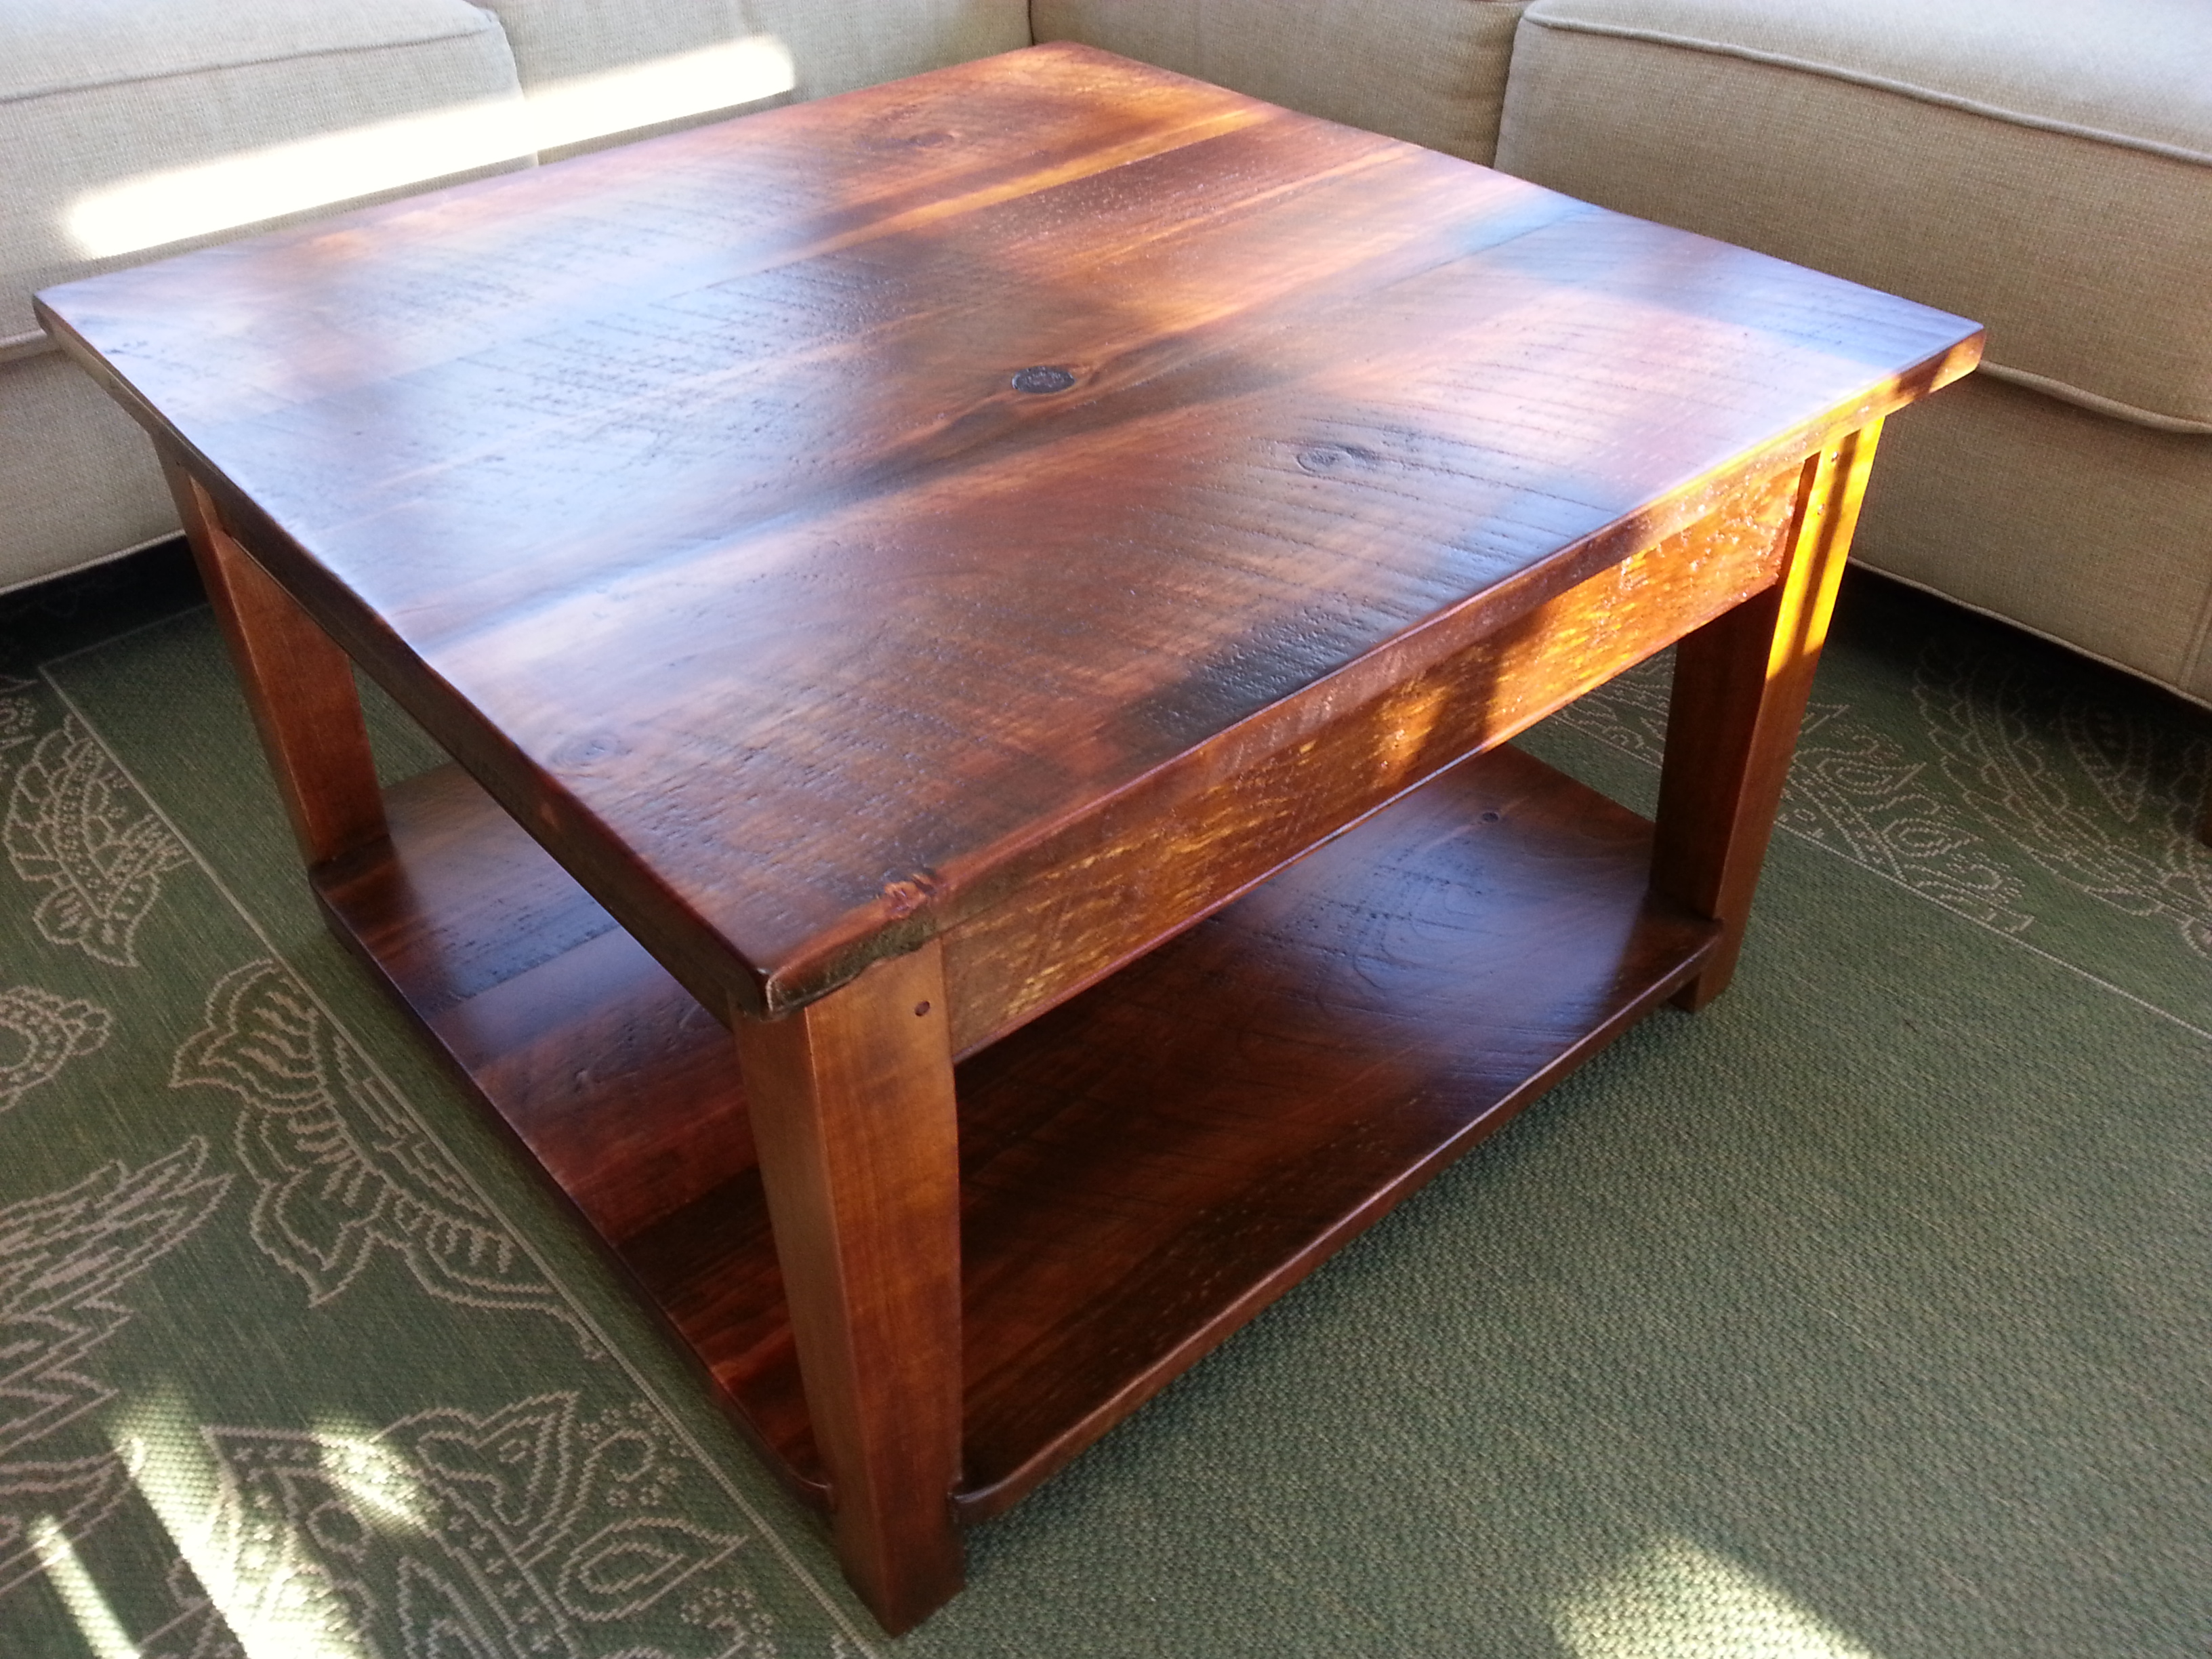 Rustic Pine coffee table #4 (rustic